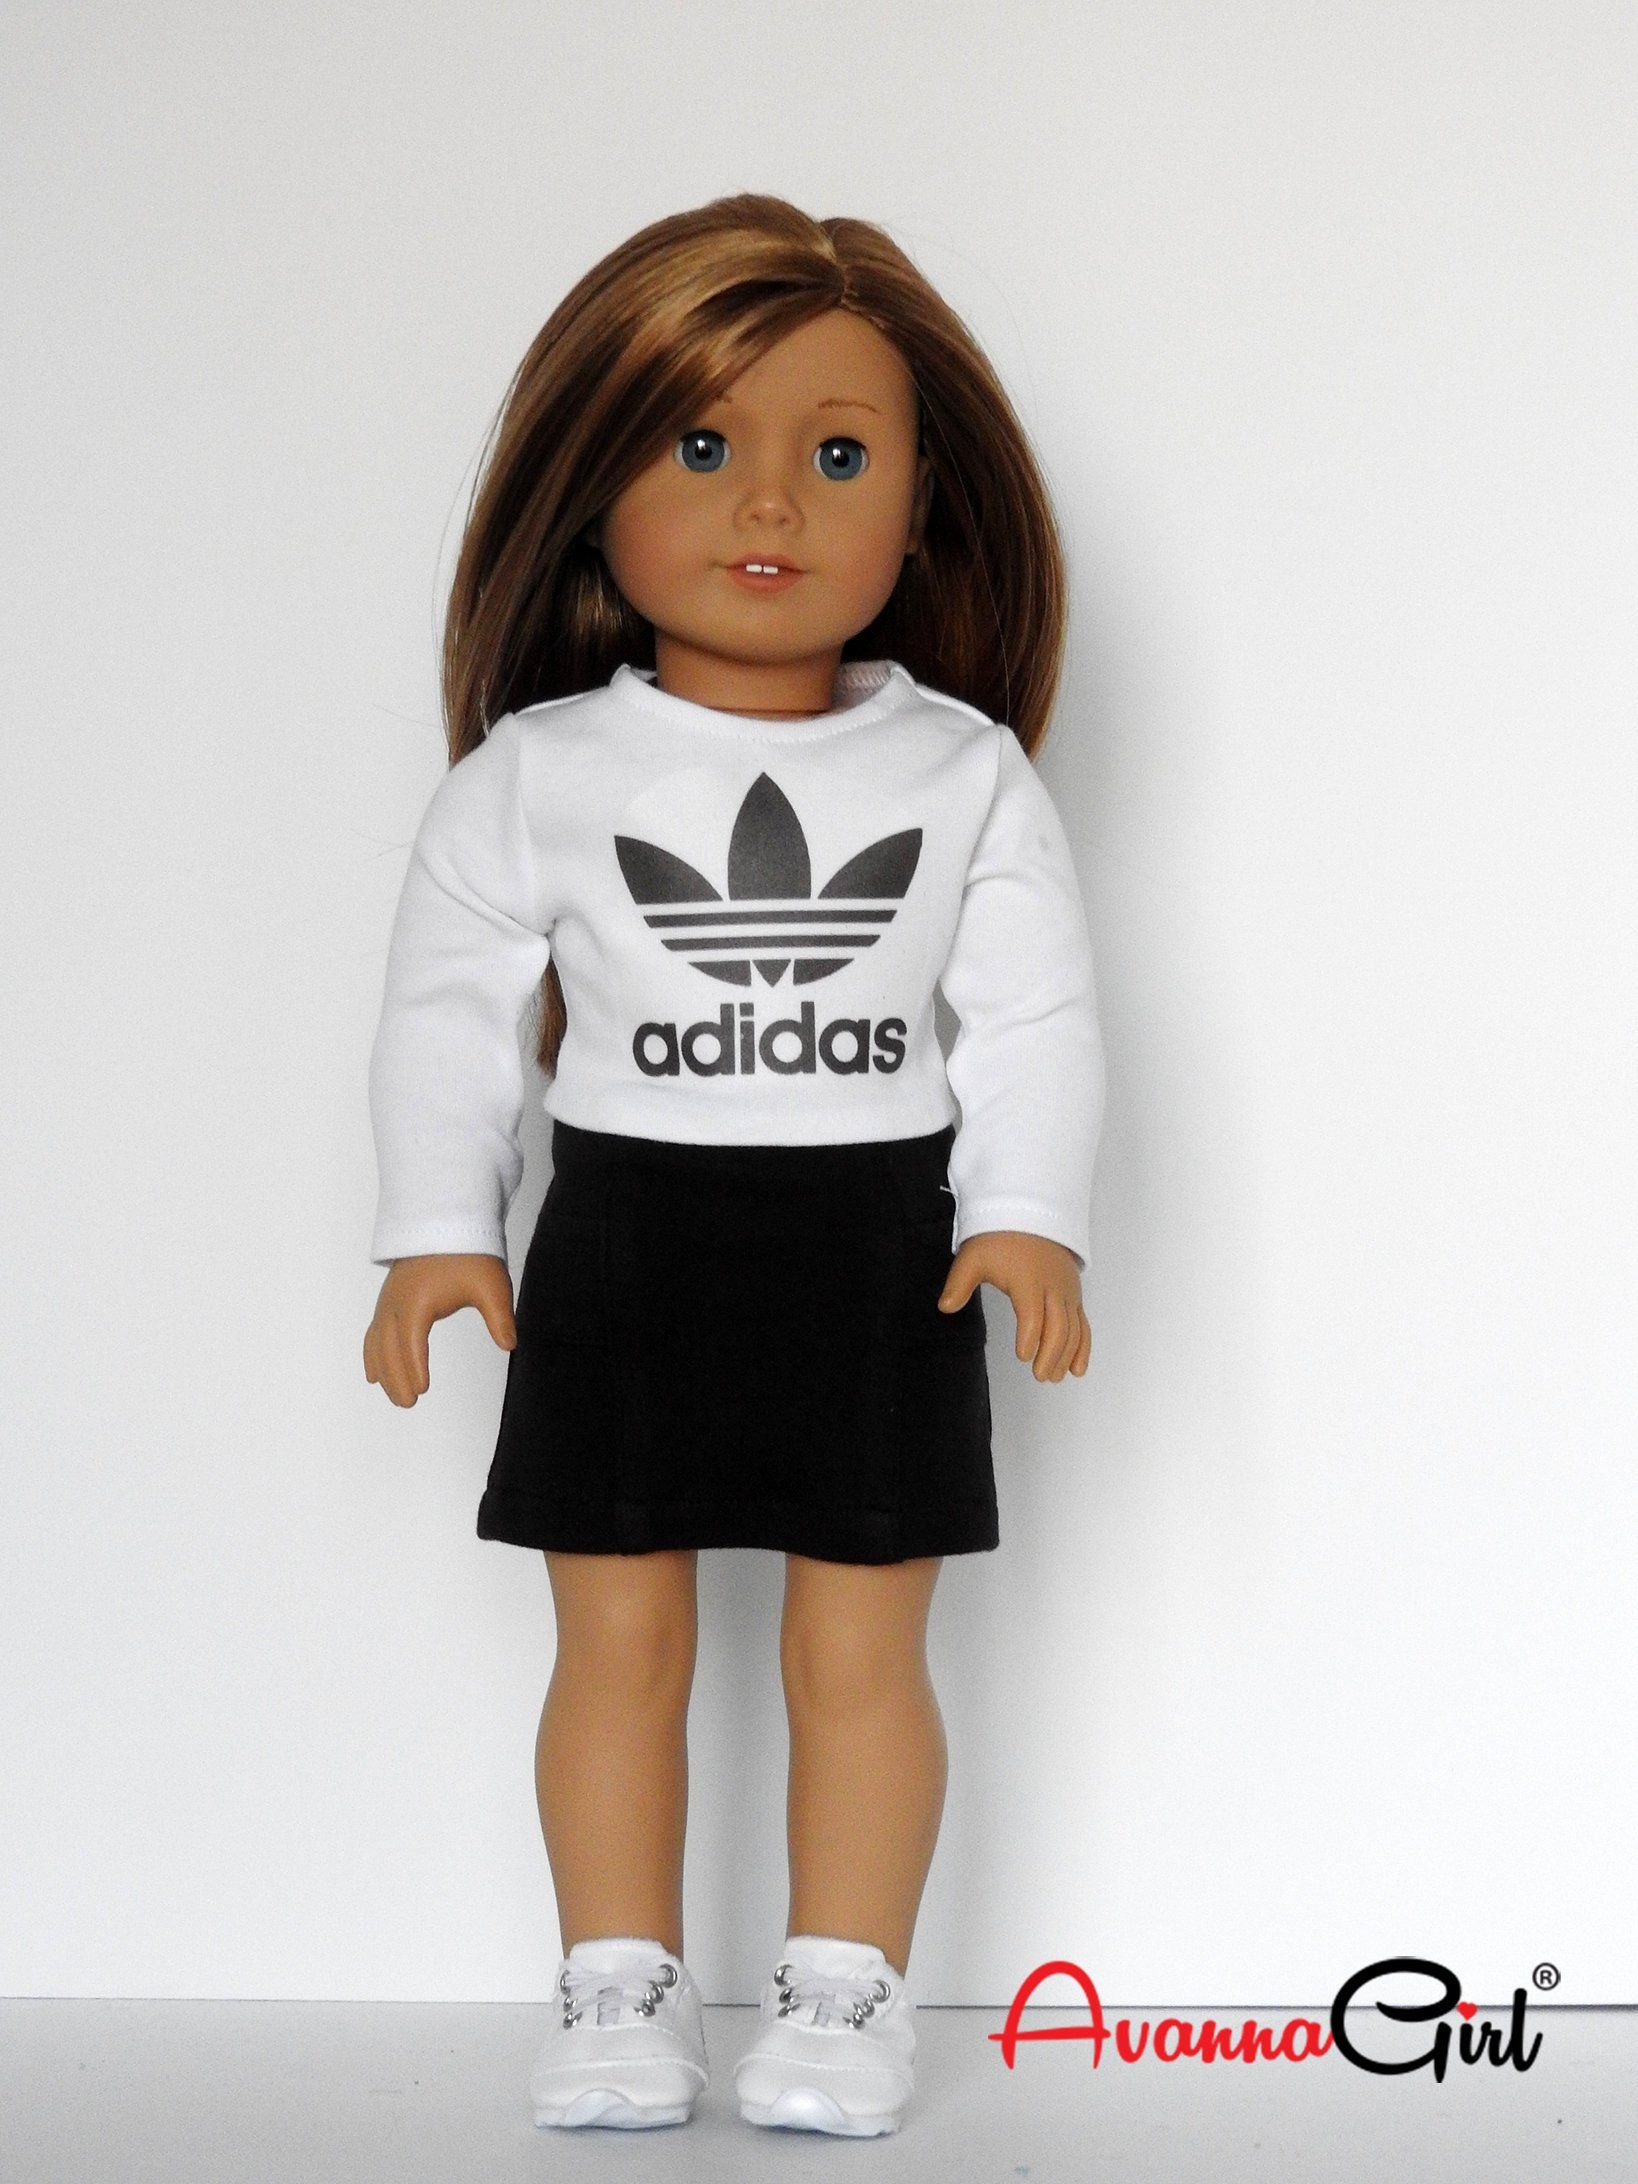 AG Doll Adidas Cropped T-Shirt and Active Wear Skirt - fits American Girl Doll - 18 Inch Dolls by AvannaGirl on Etsy #americangirldollcrafts